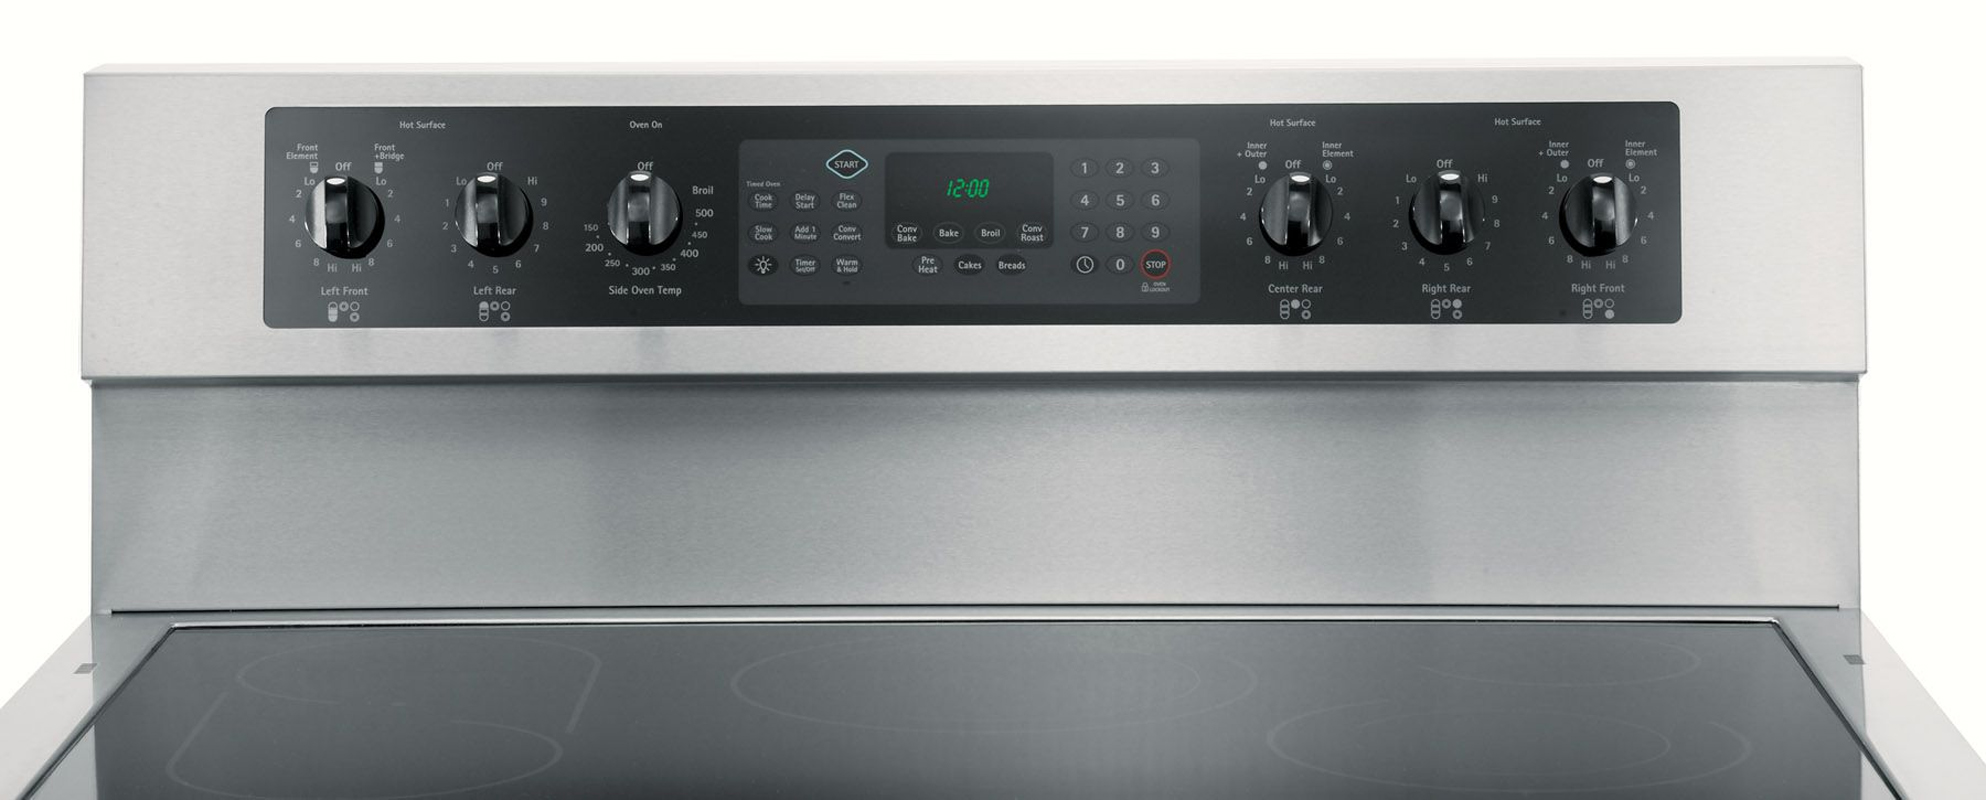 Kenmore Elite 5.4 cu. ft. Double-Oven Electric Range - Stainless Steel